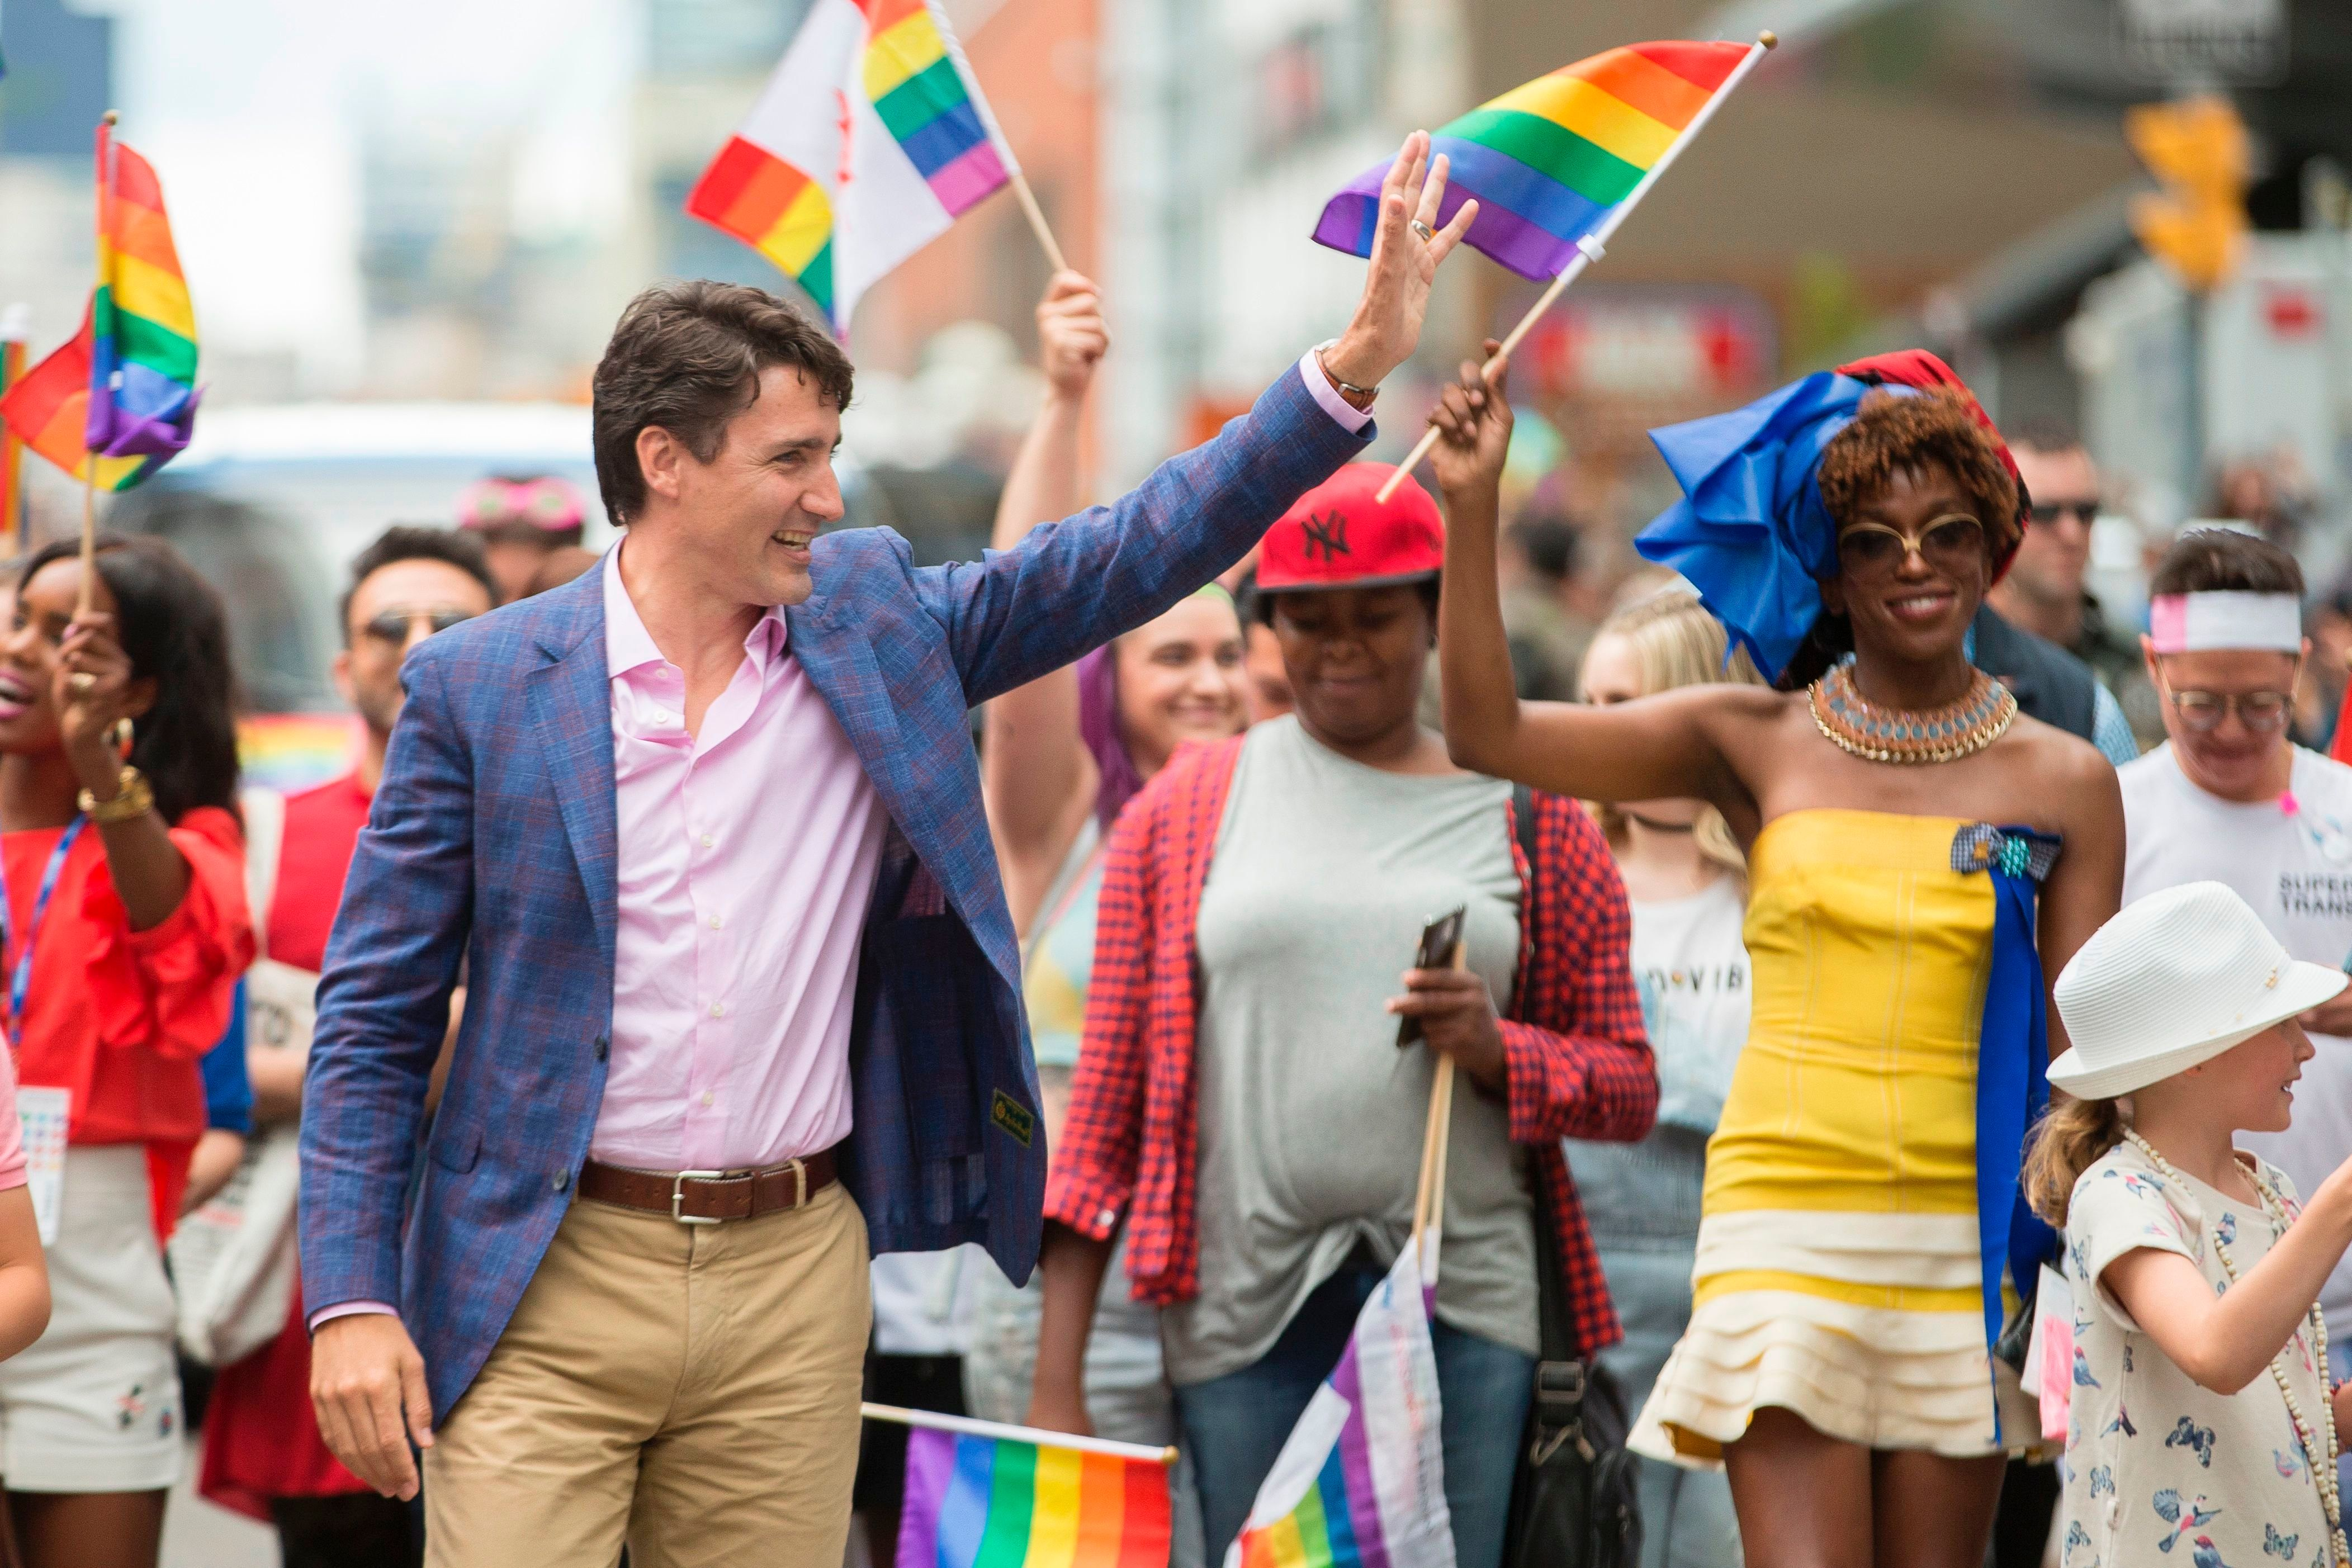 Justin Trudeau's Pride Socks Have A Not-So-Hidden Message